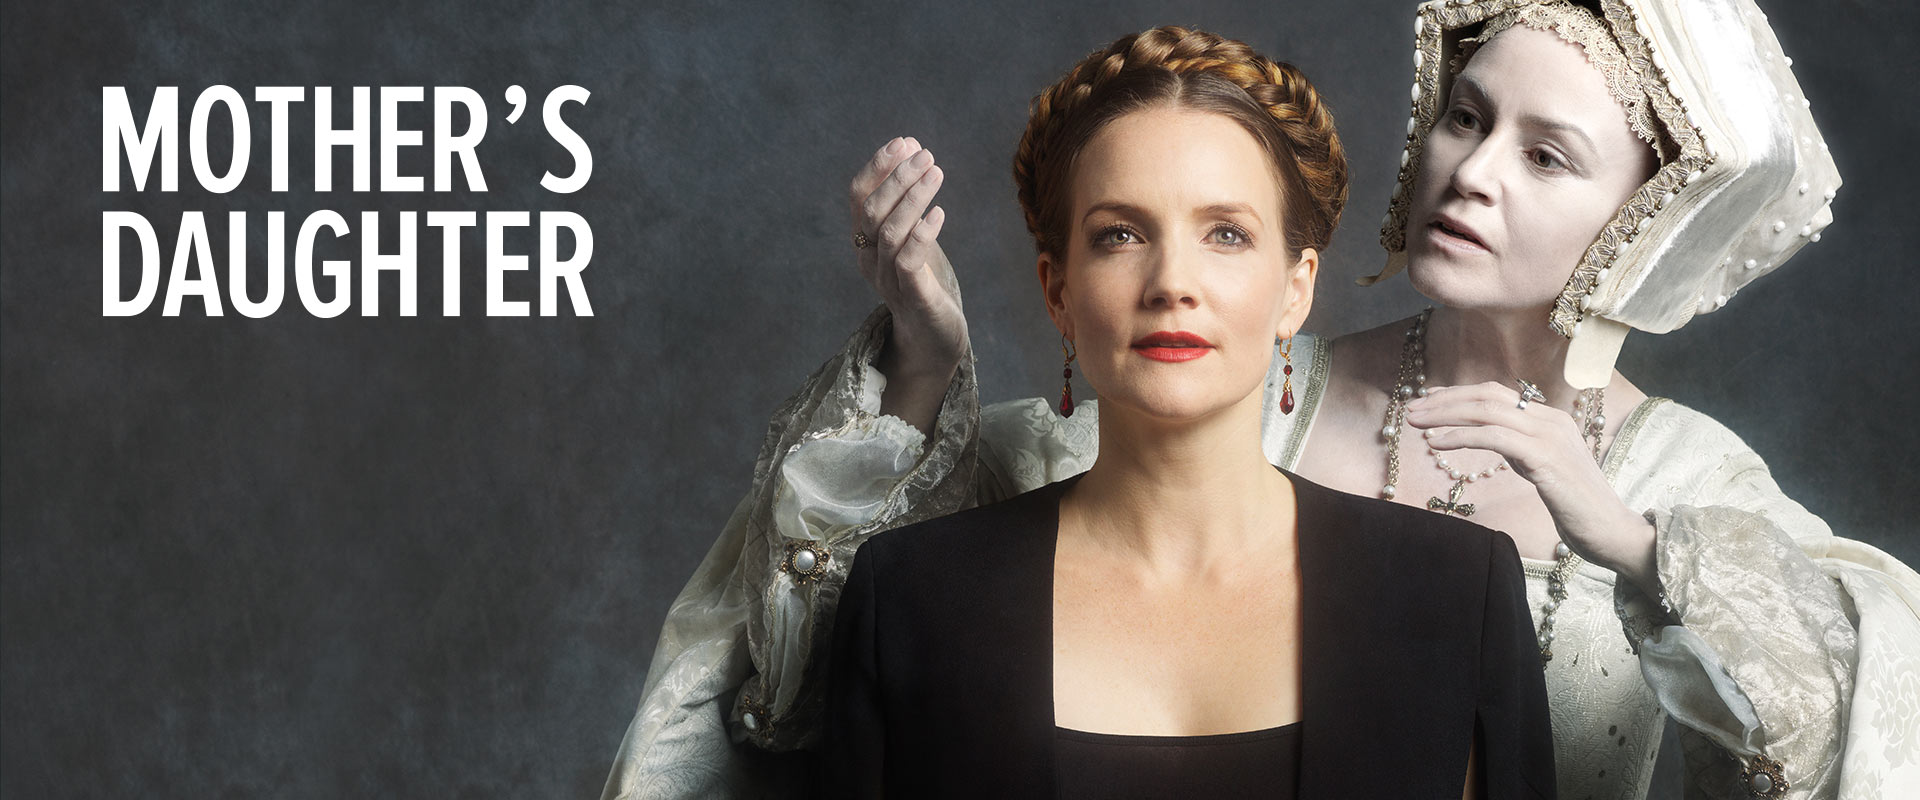 Publicity image from Mother